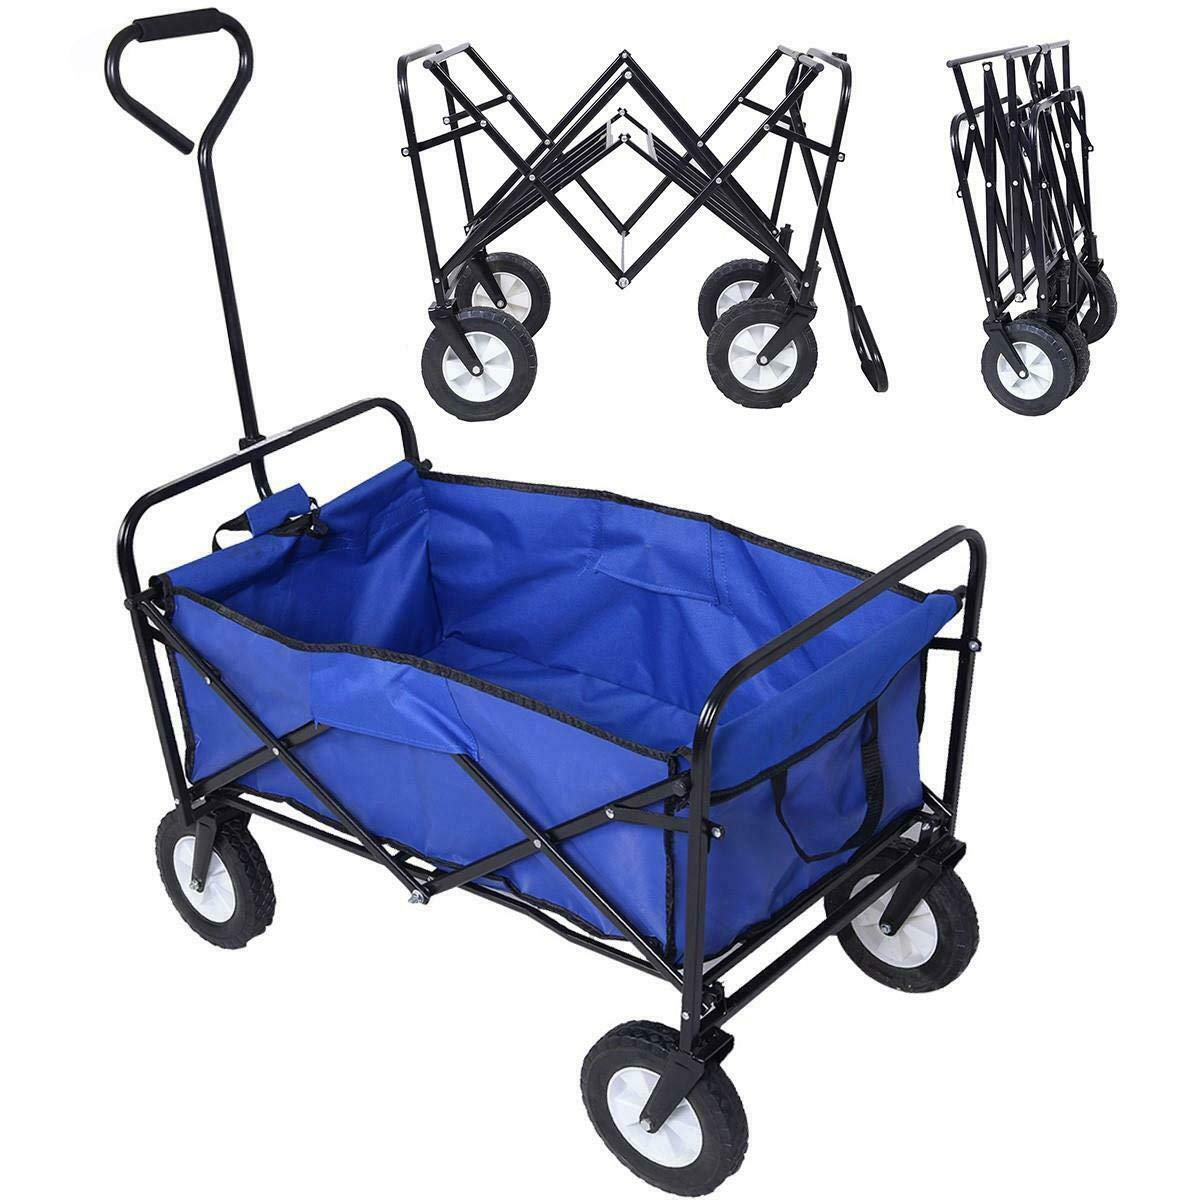 Heavy Duty Collapsible Cart Utility Folding Wagon Pull Garden Cart Shopping, Beach, Gardening, Storage, Camping Trolley by Ronzhy